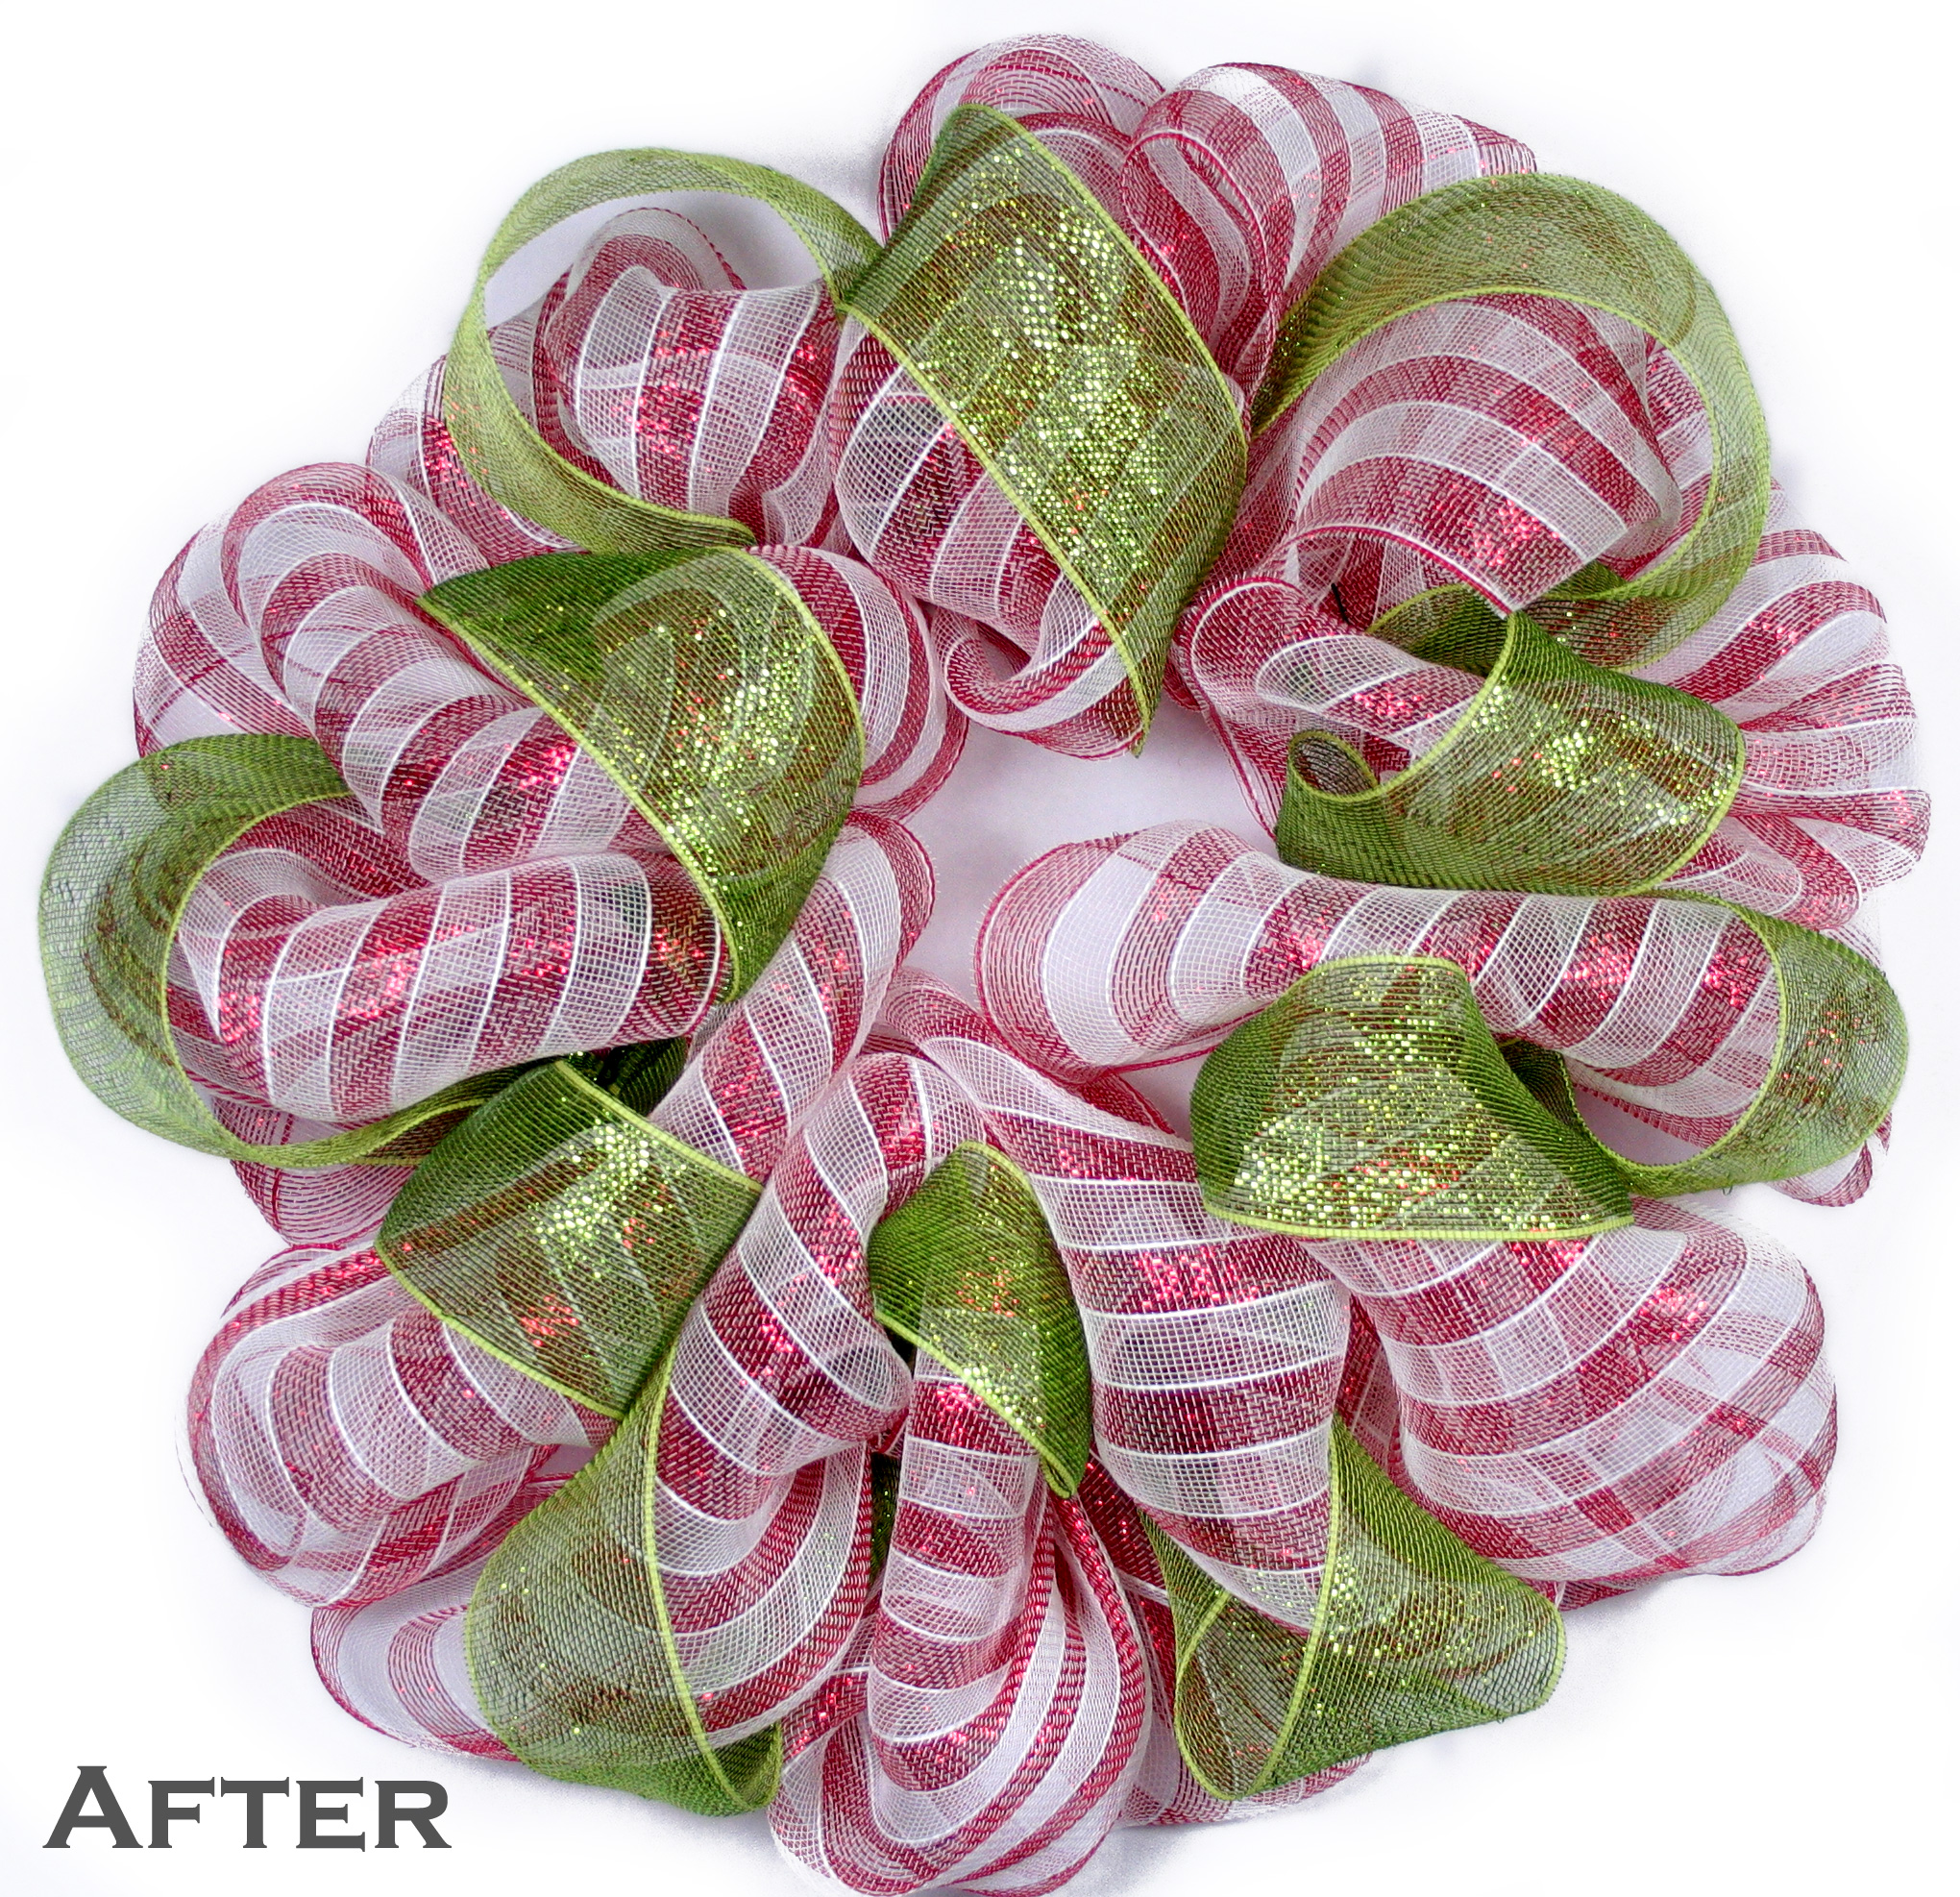 Party Ideas By Mardi Gras Outlet Candy Cane Stripe Holiday Wreath Ez Wreath Form Tutorial